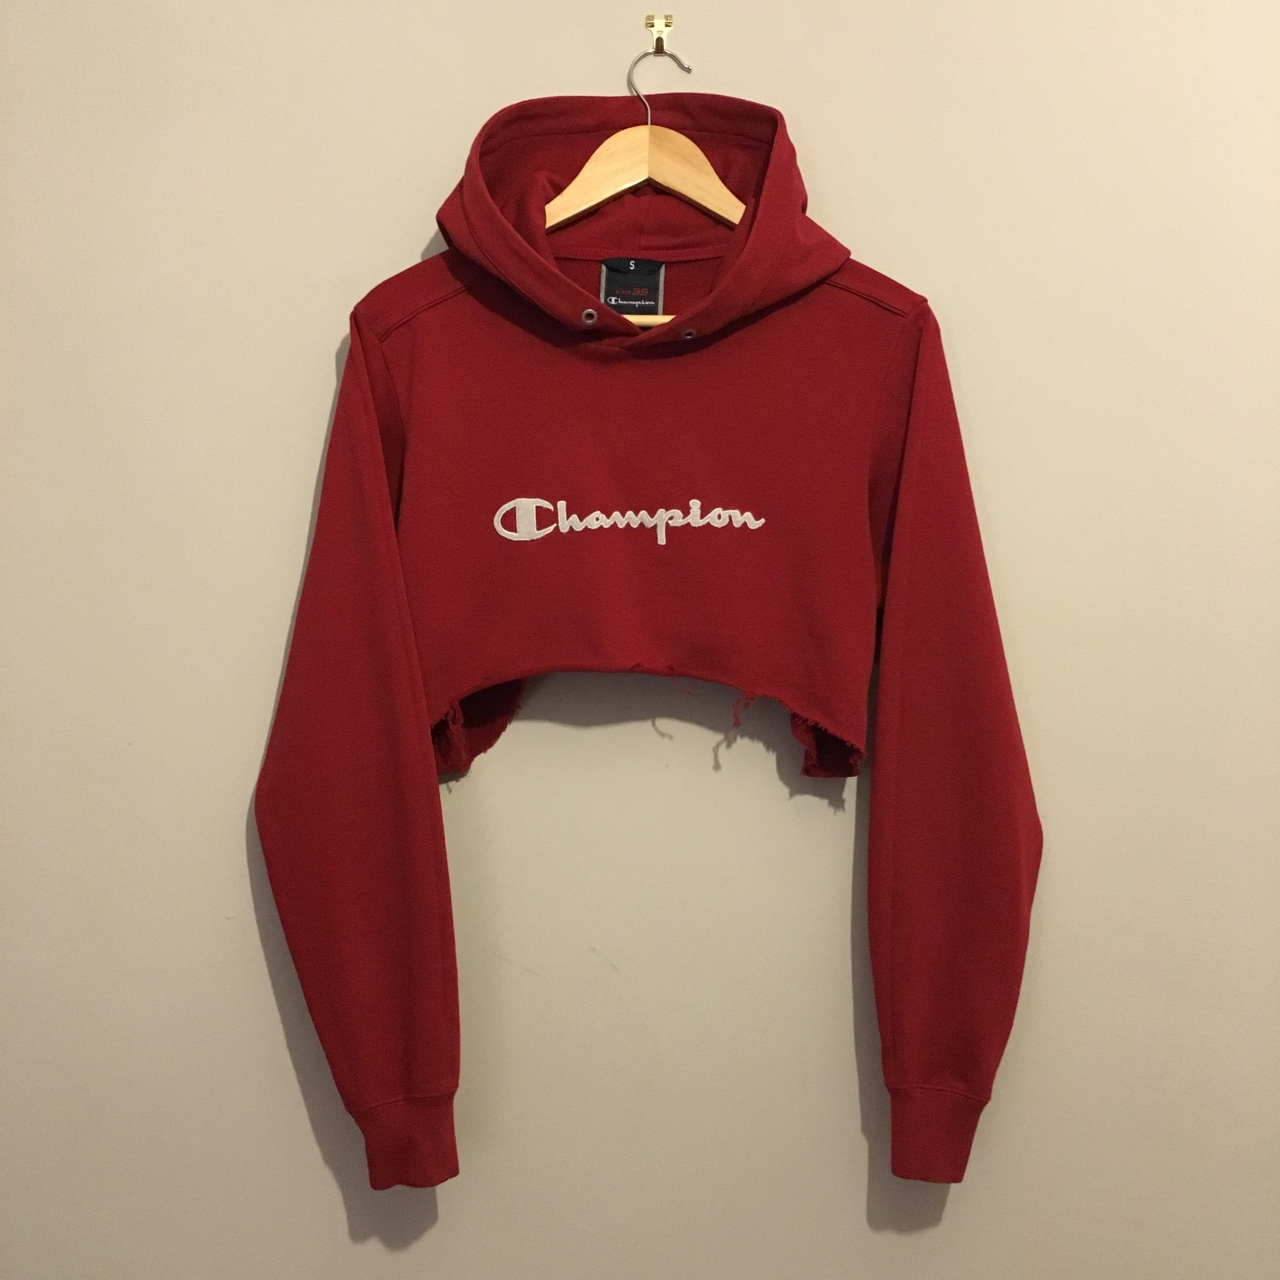 Vintage Champion Hoodie Diy Cropped Size Small